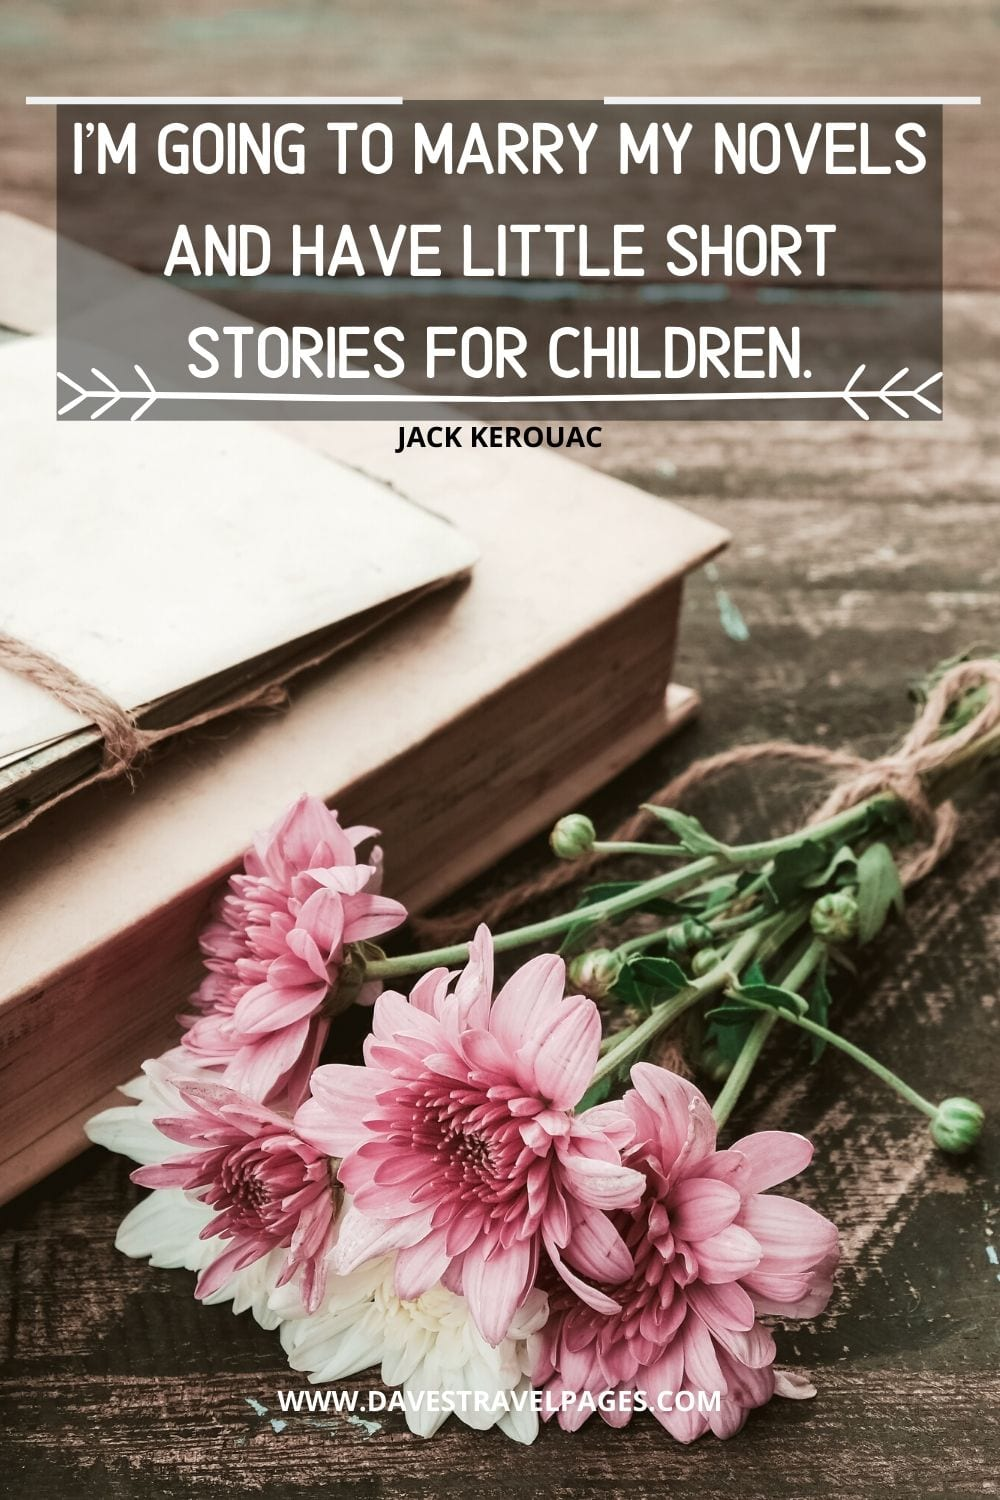 """I'm going to marry my novels and have little short stories for children."" - Jack Kerouac Quote"